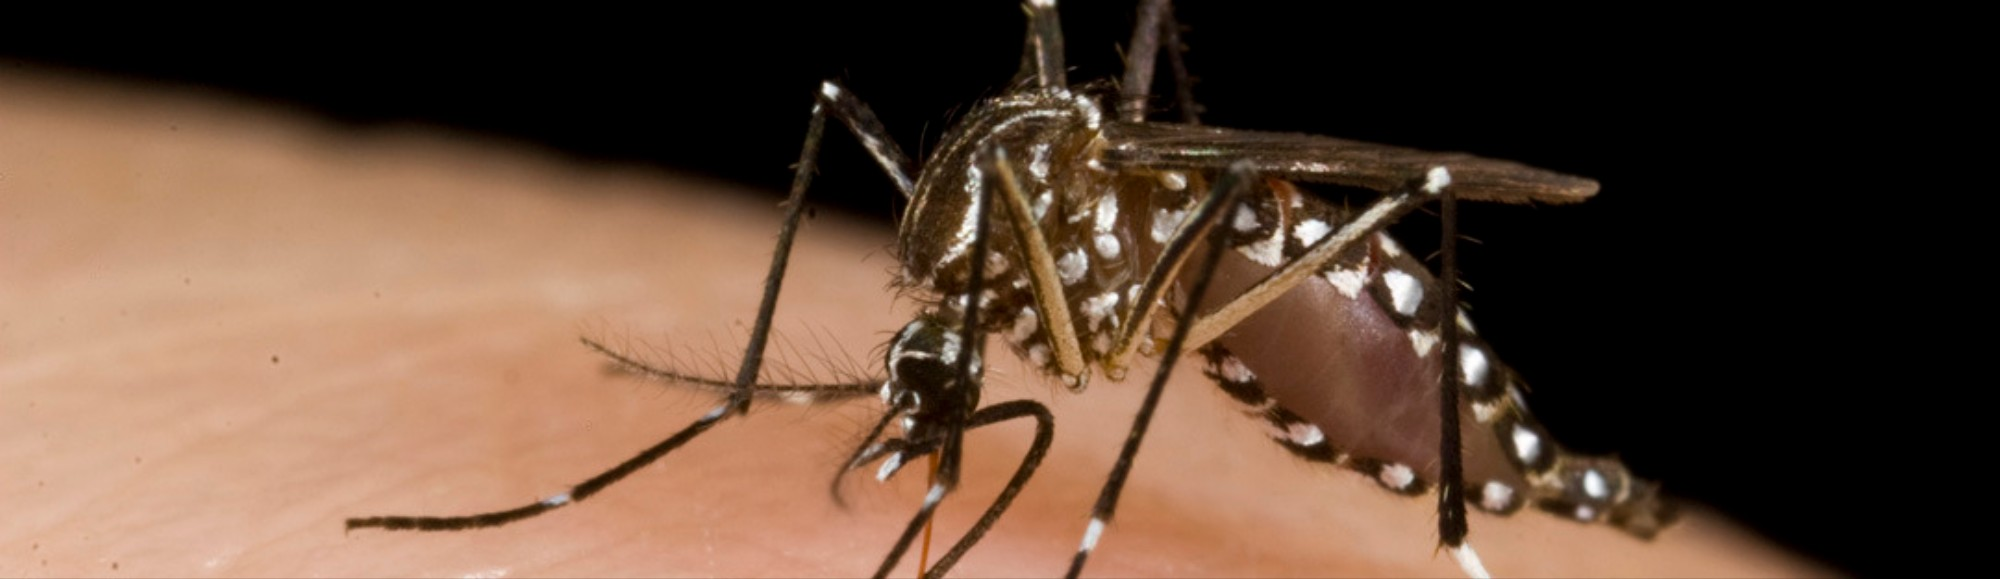 The Chikungunya Virus Is Expected to Make Its US Debut This Summer